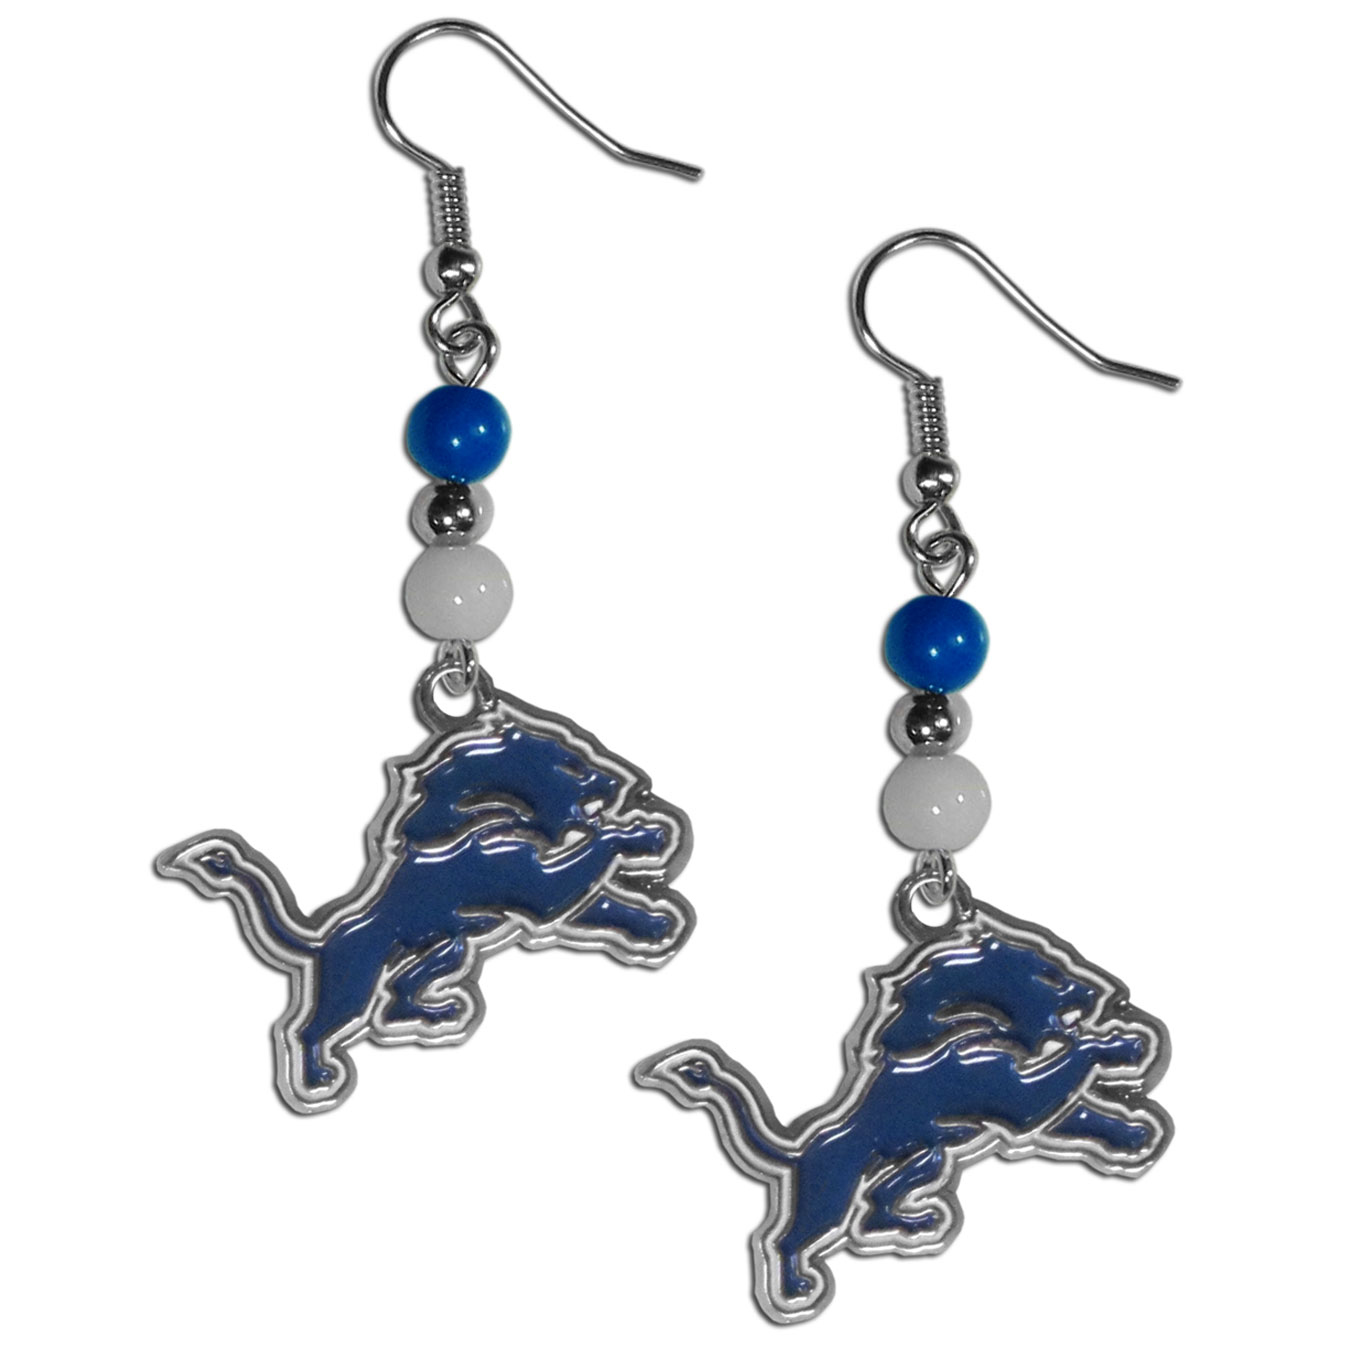 Detroit Lions Fan Bead Dangle Earrings - Love your team, show it off with our Detroit Lions bead dangle earrings! These super cute earrings hang approximately 2 inches and features 2 team colored beads and a high polish team charm. A must have for game day!